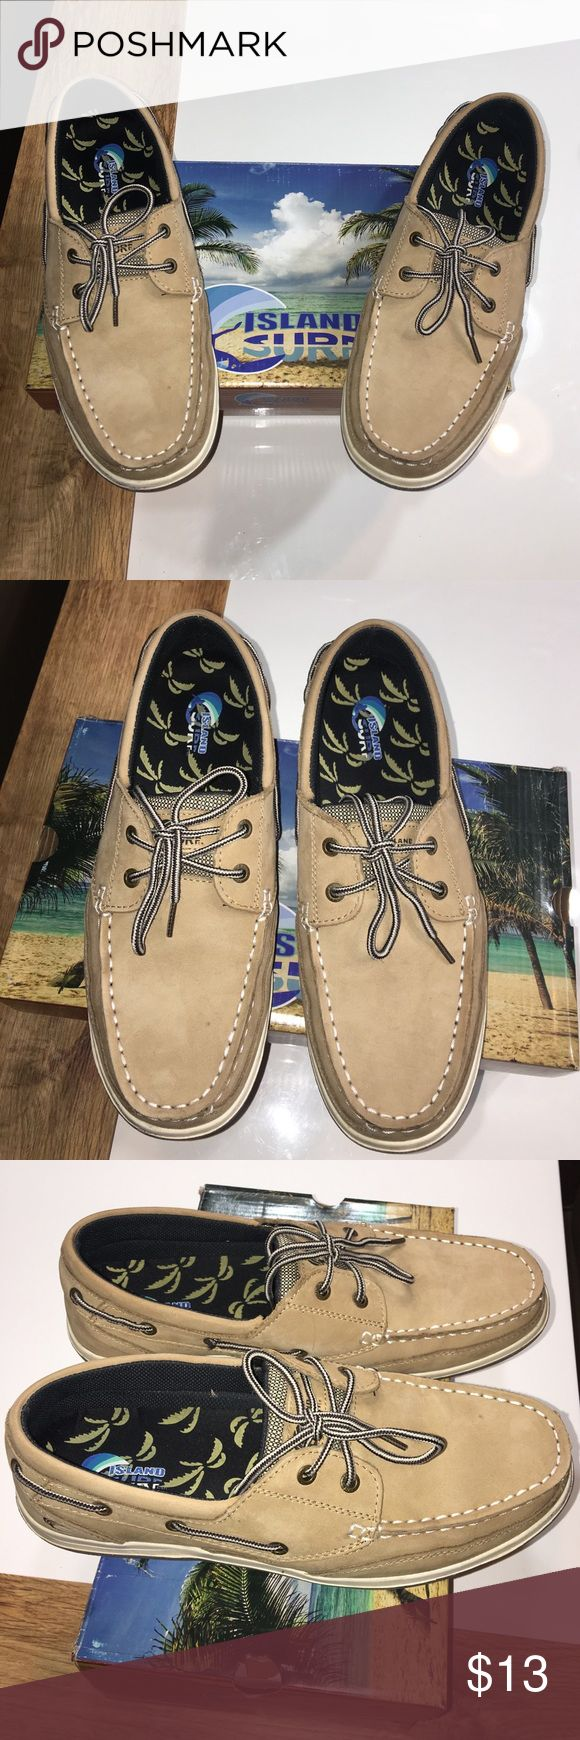 Maui Island leather boat shoes sz 10.5 Good Condition light wear Maui Island leather boat shoes sz 10.5 similar to Sperry Top Sider final price listed please no offers Maui Island  Shoes Boat Shoes